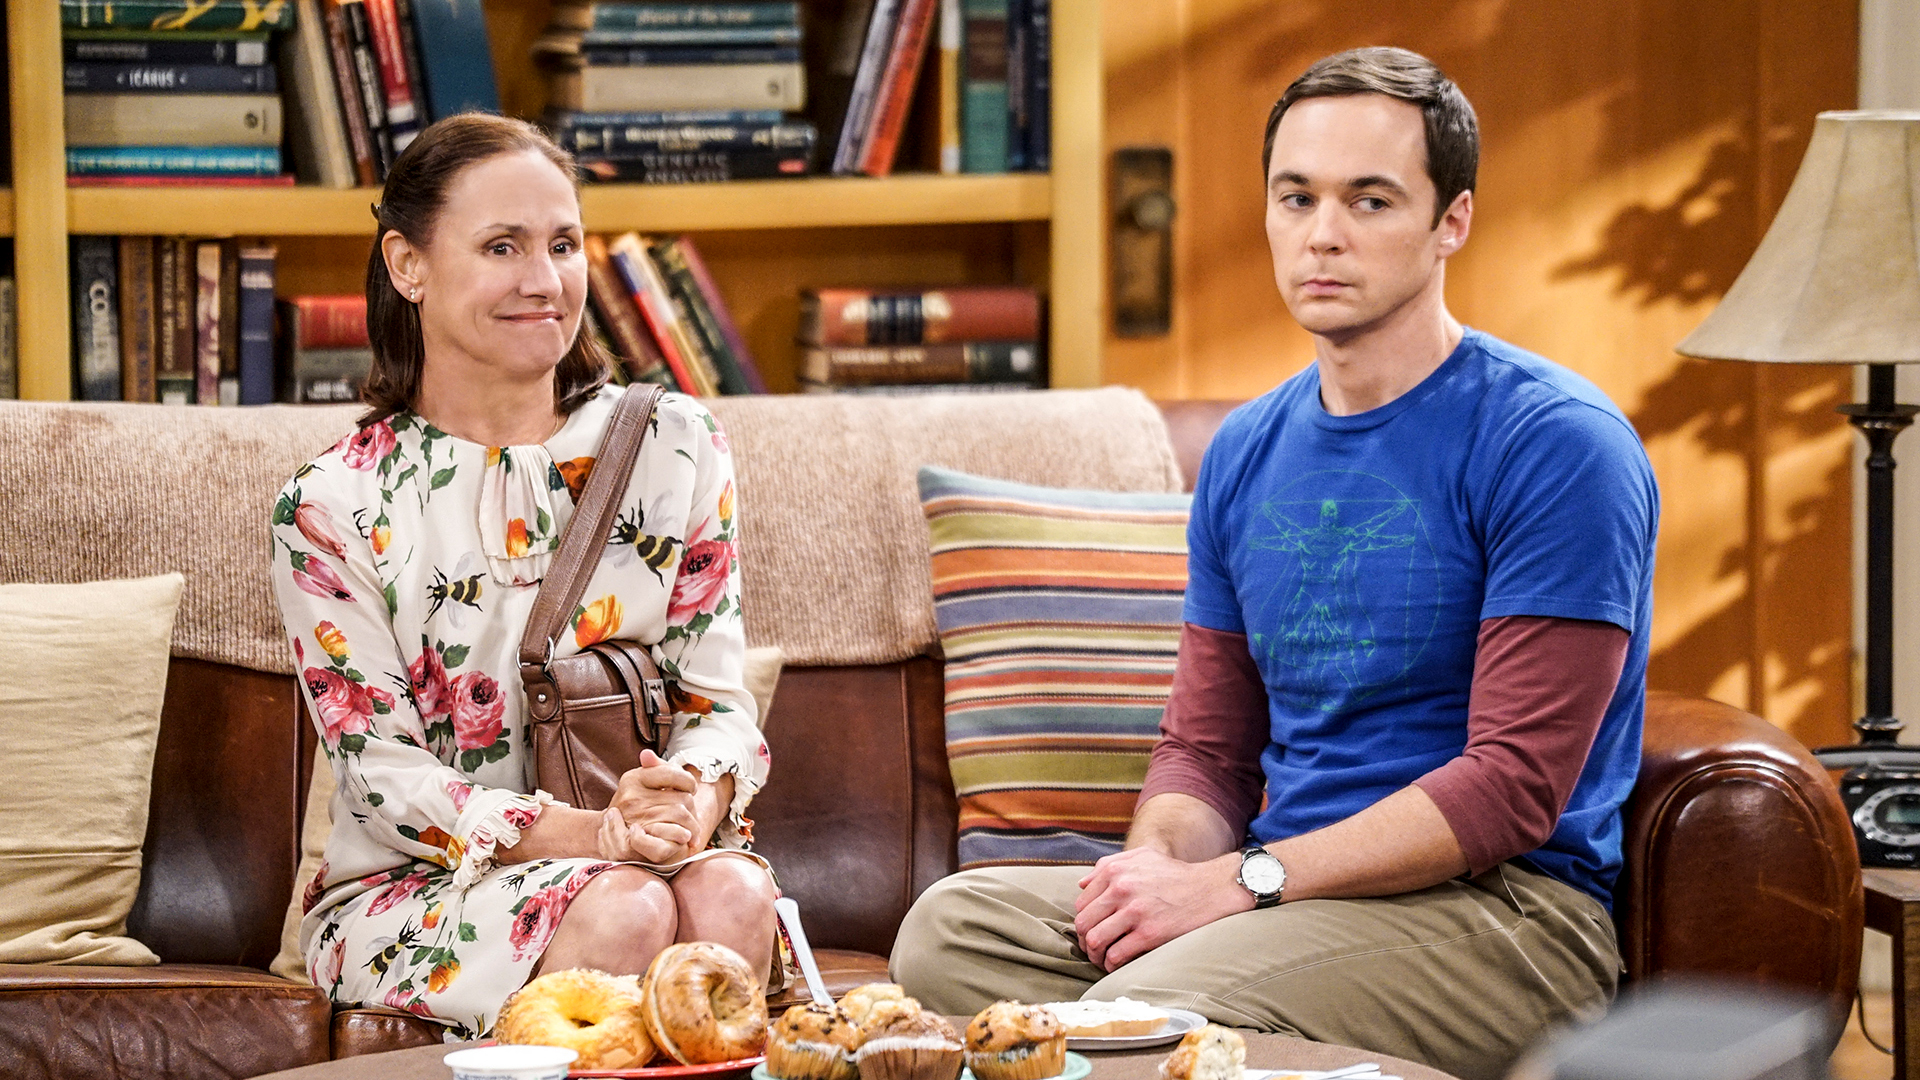 Sheldon's mother, Mary (Laurie Metcalf), sits next to her son on the couch.